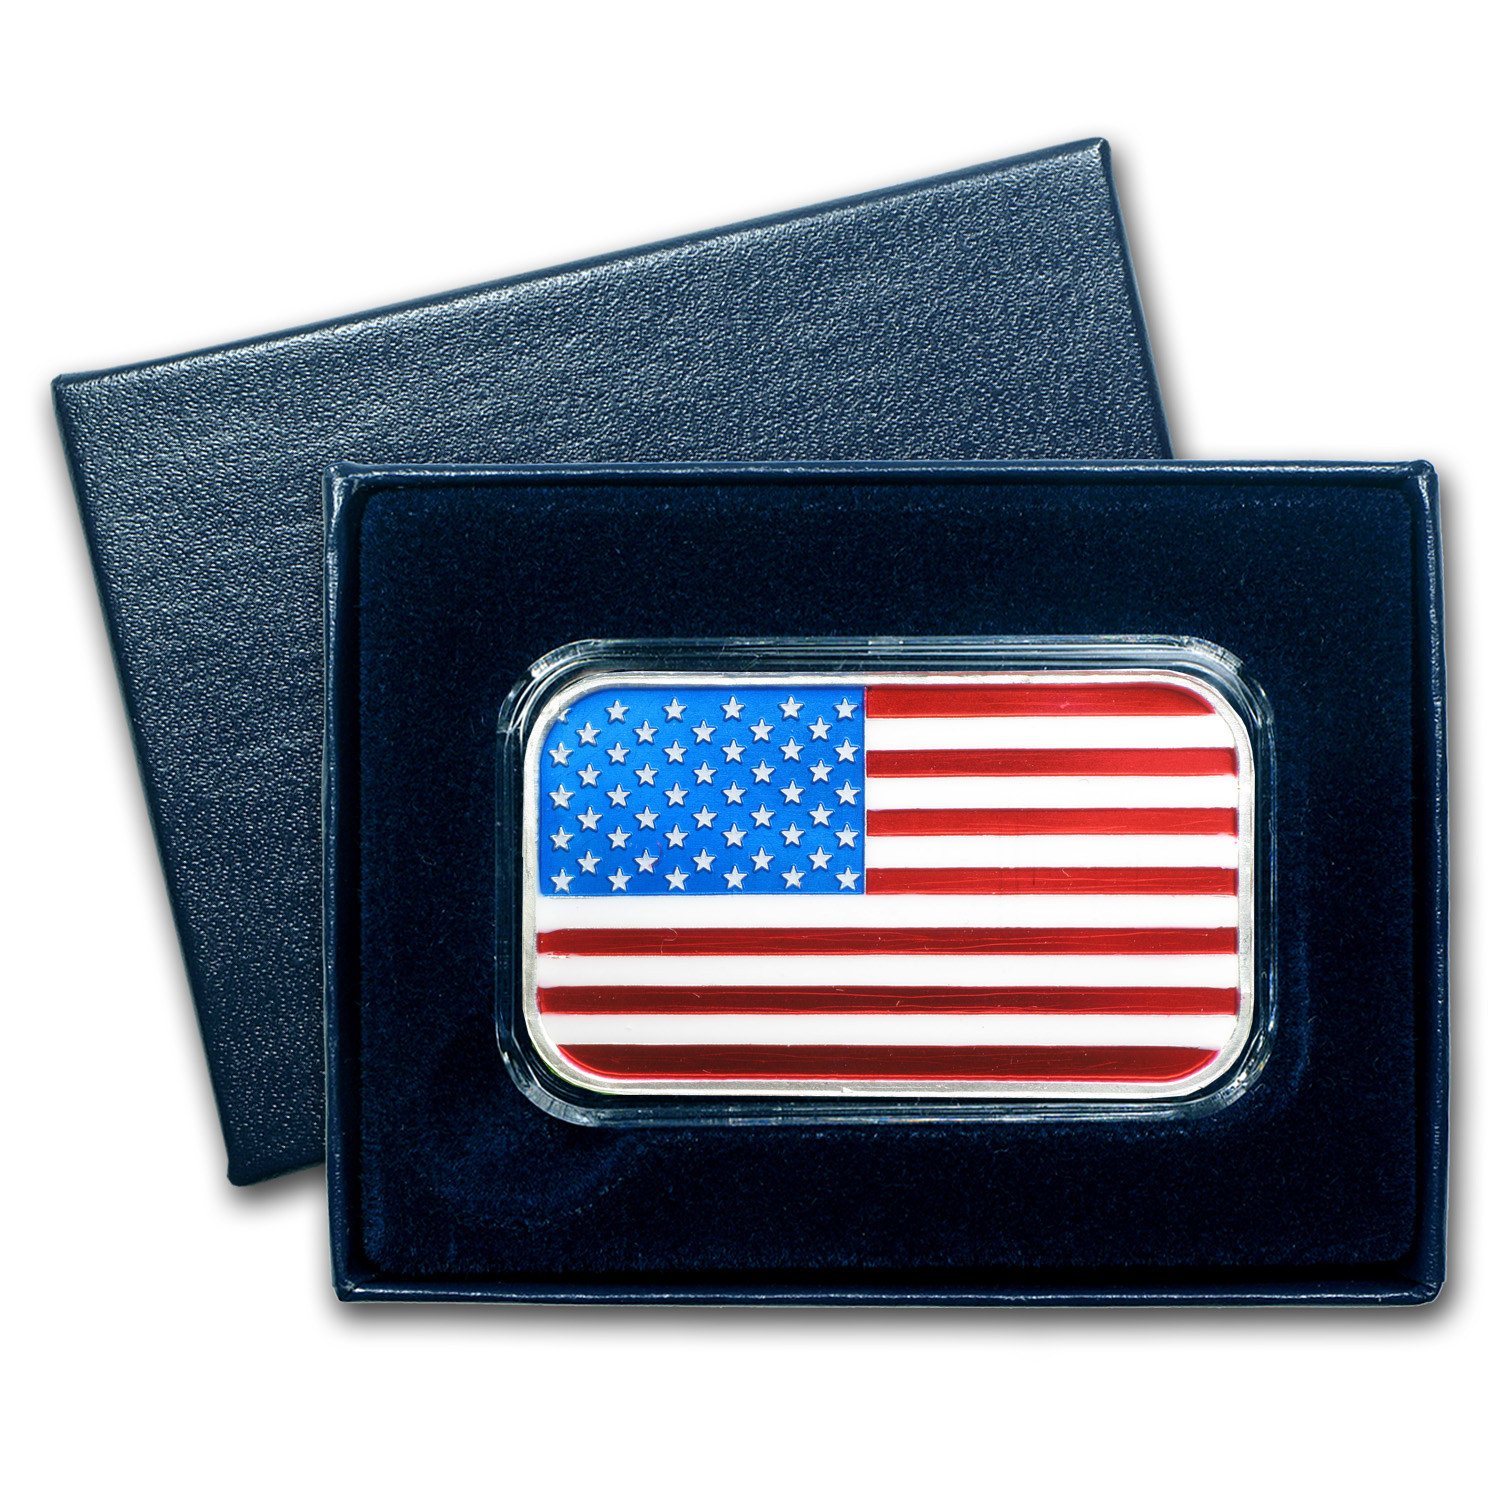 1 oz Silver Bar - American Flag Enameled (w/Box & Capsule)